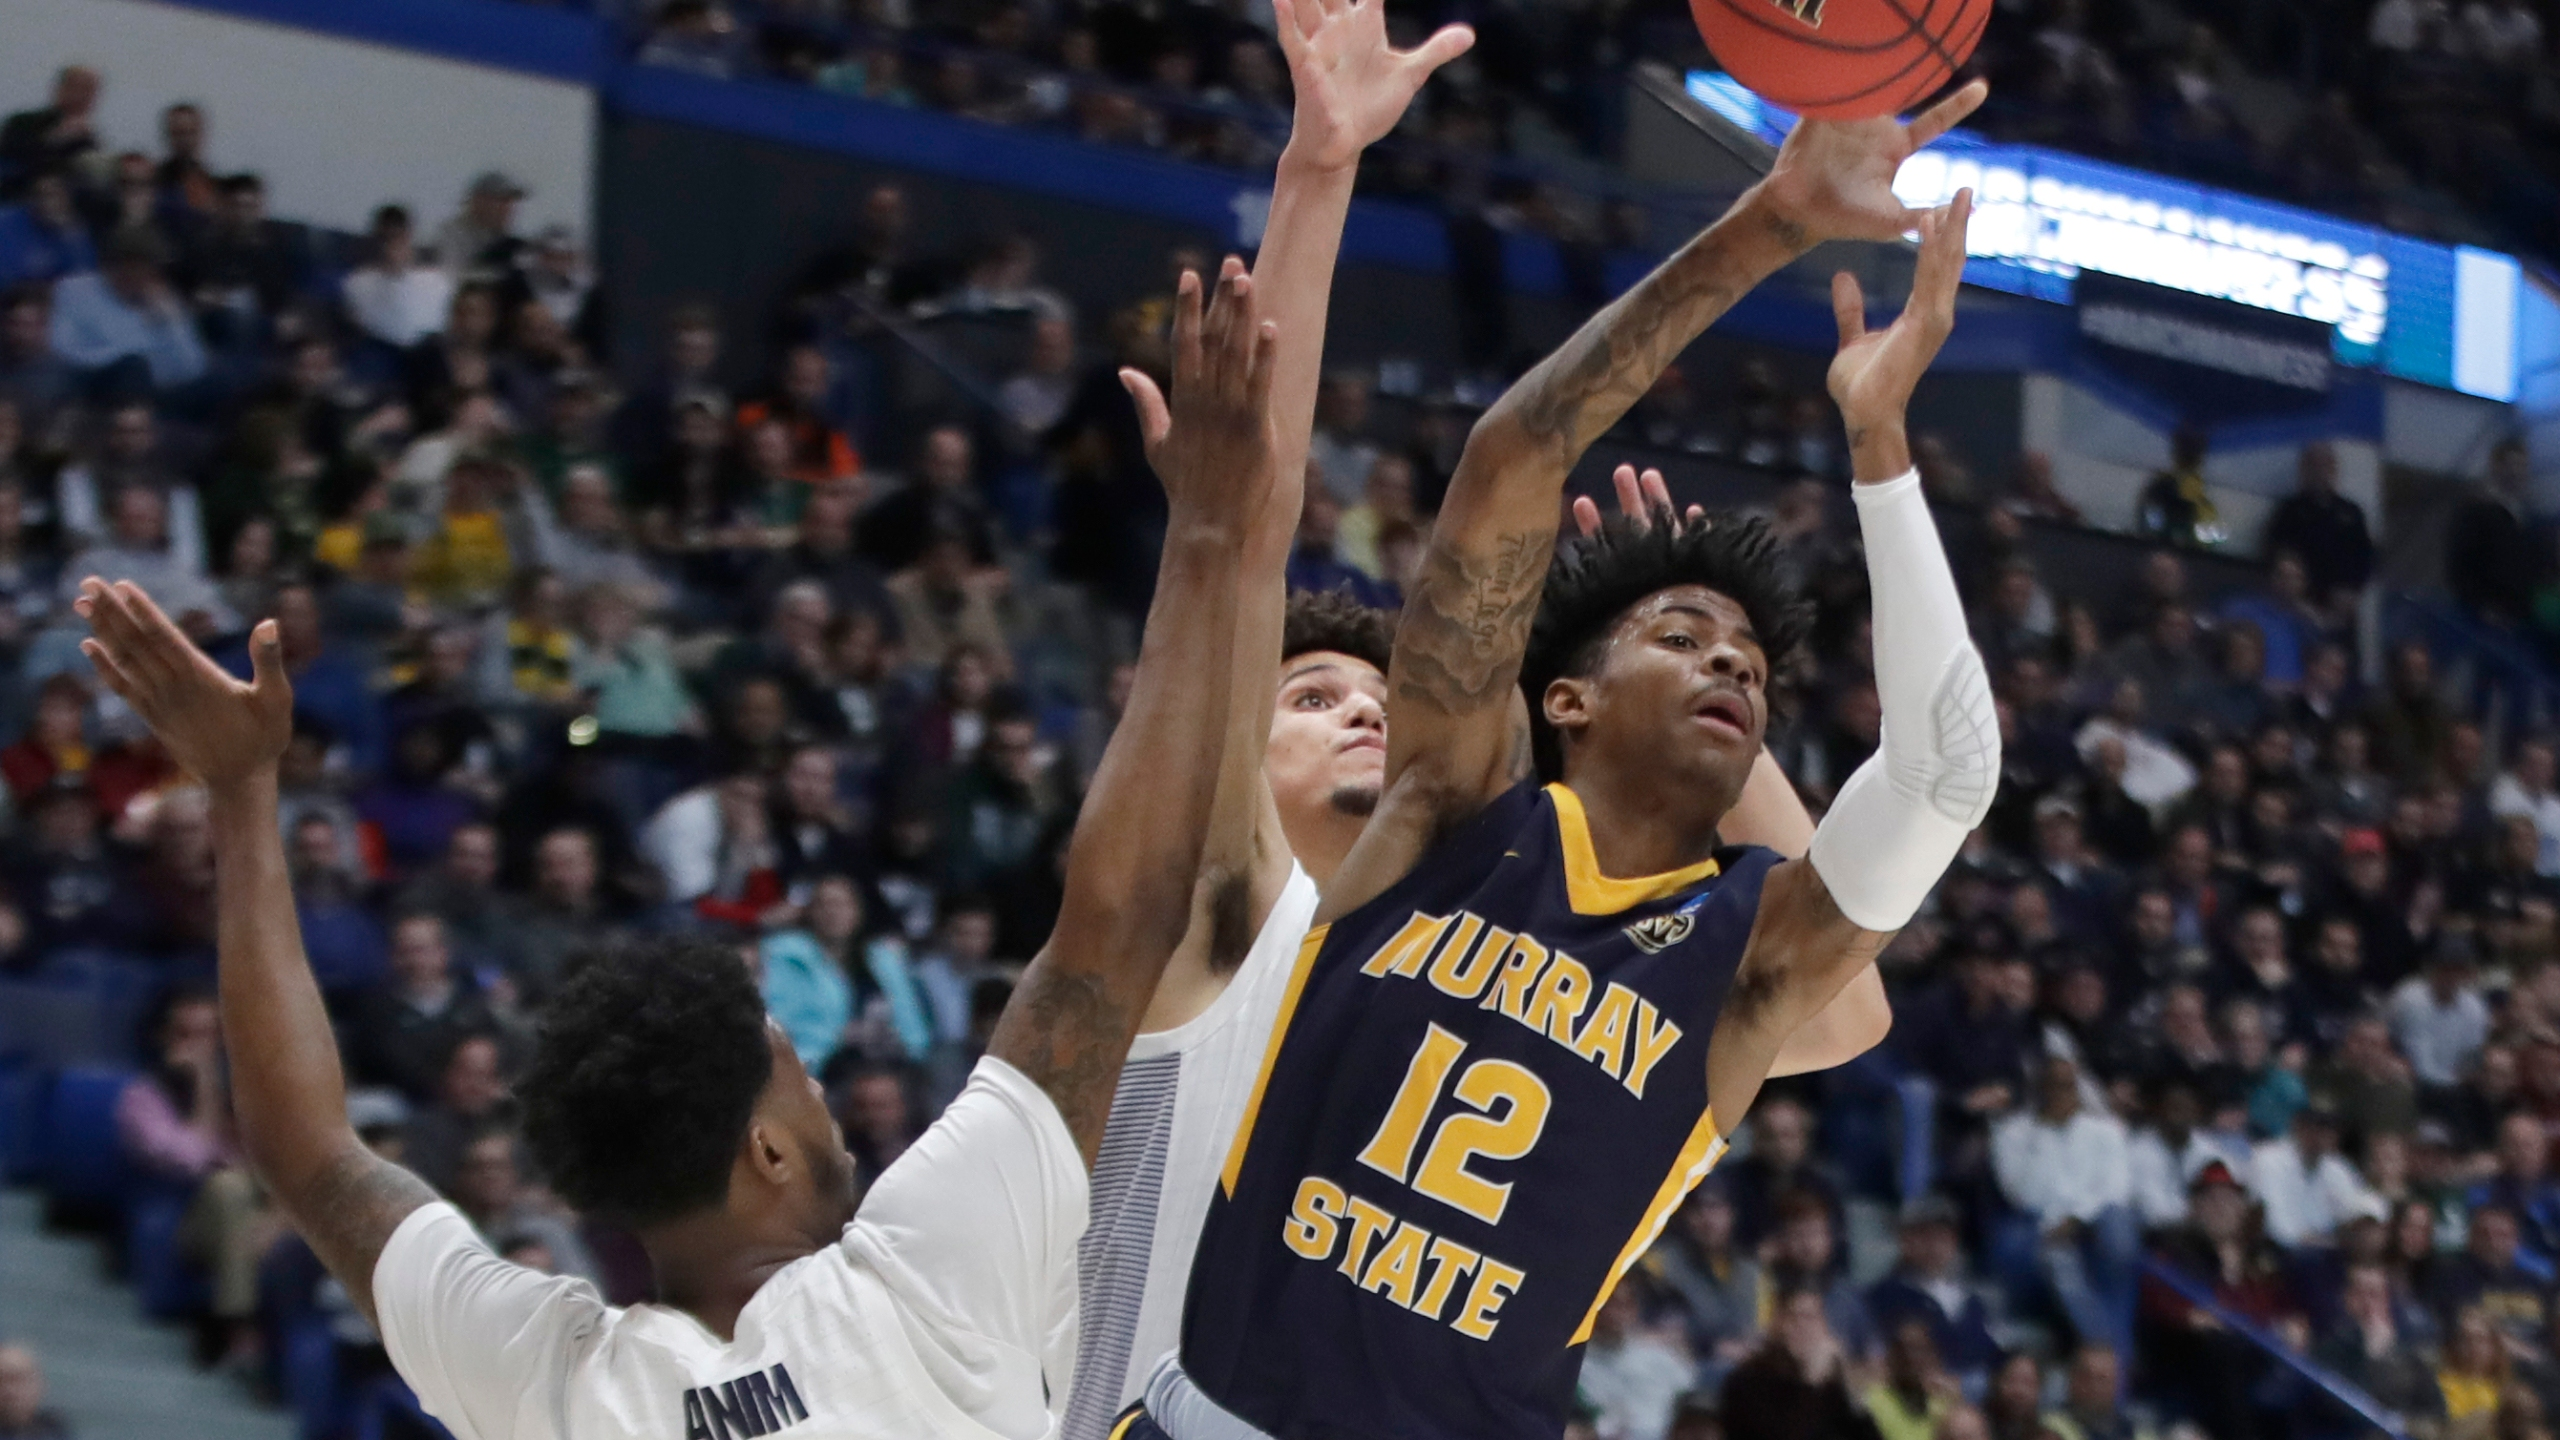 NCAA_Murray_St_Marquette_Basketball_29547-159532.jpg42492468